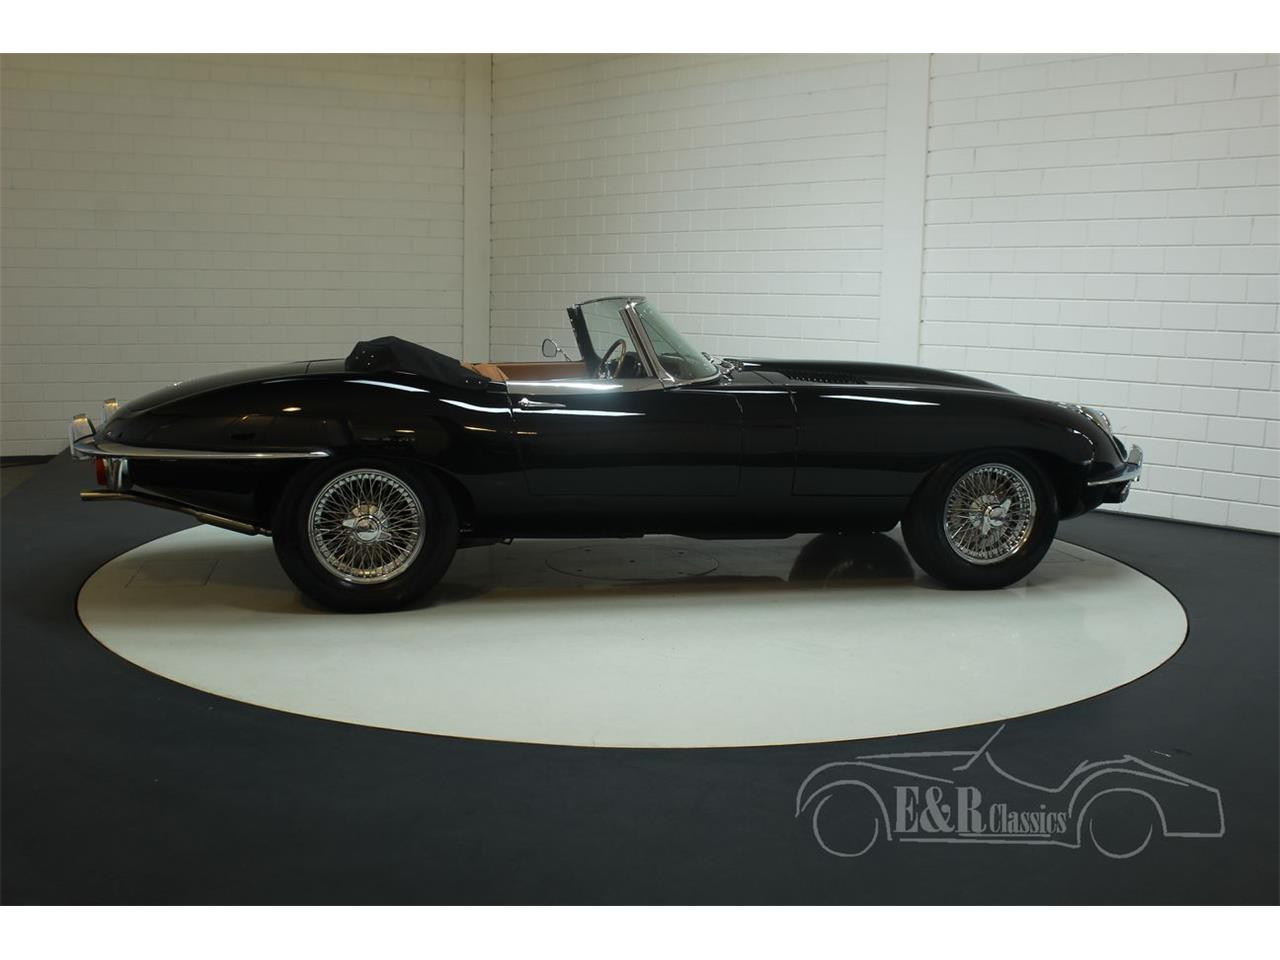 Large Picture of Classic '69 Jaguar E-Type located in noord brabant - $145,500.00 Offered by E & R Classics - QOU8